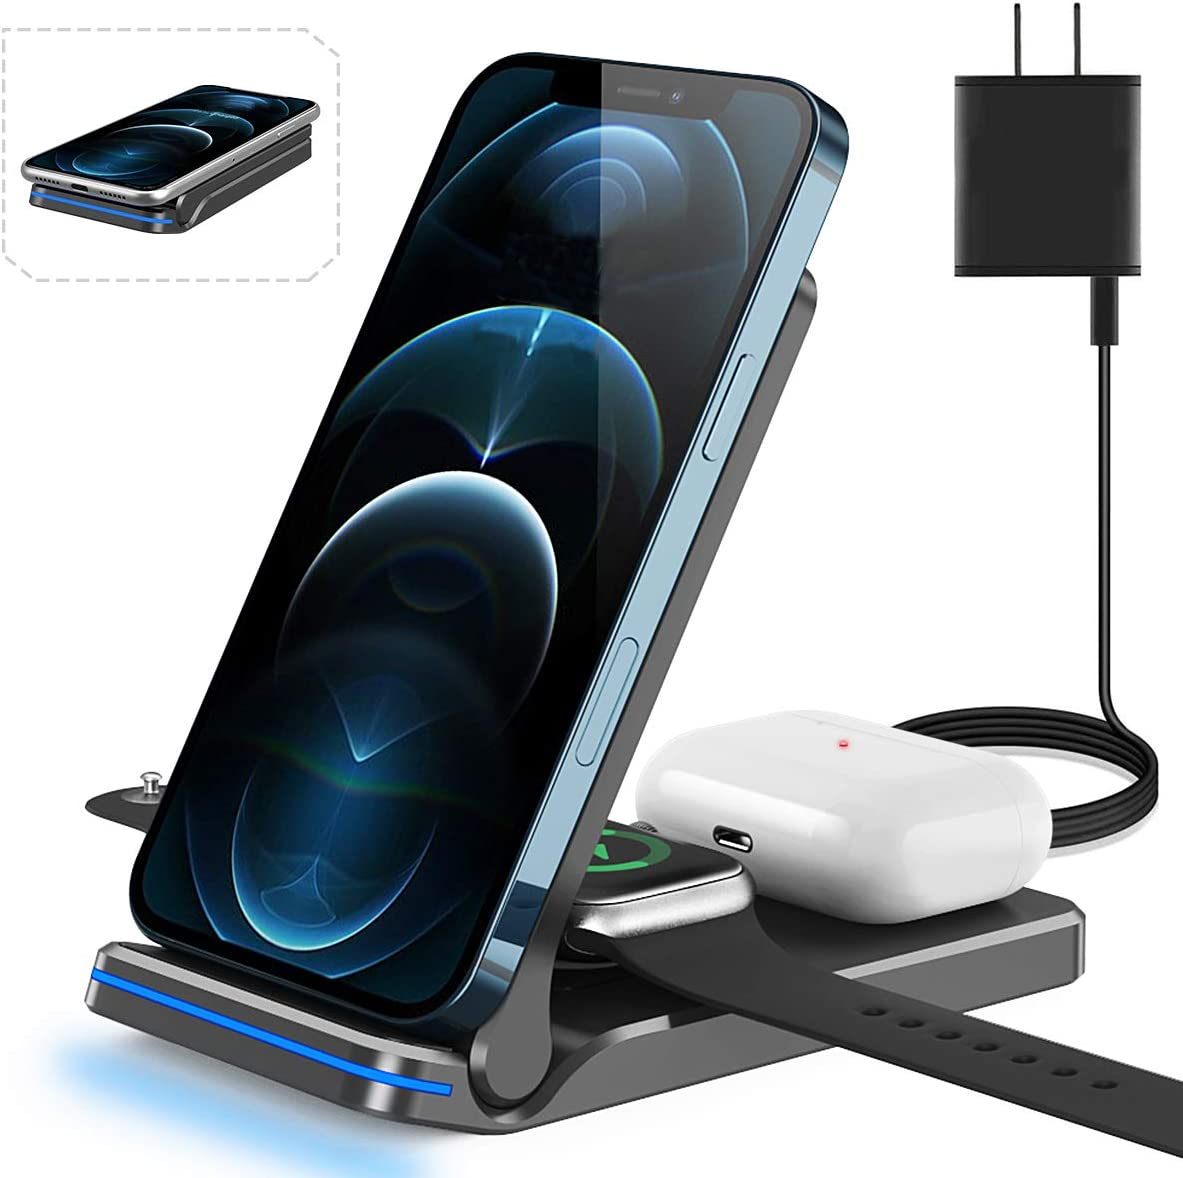 3 in 1 Wireless Charging Station for Apple iPhone Watch Airpods, Almsbo 15W Fast Wireless Charger for Apple iWatch 6/SE/5/4/3/2/1,AirPods 3/2/1, iPhone 11/12 Series/XS MAX/XR/XS/X/8/8 Plus